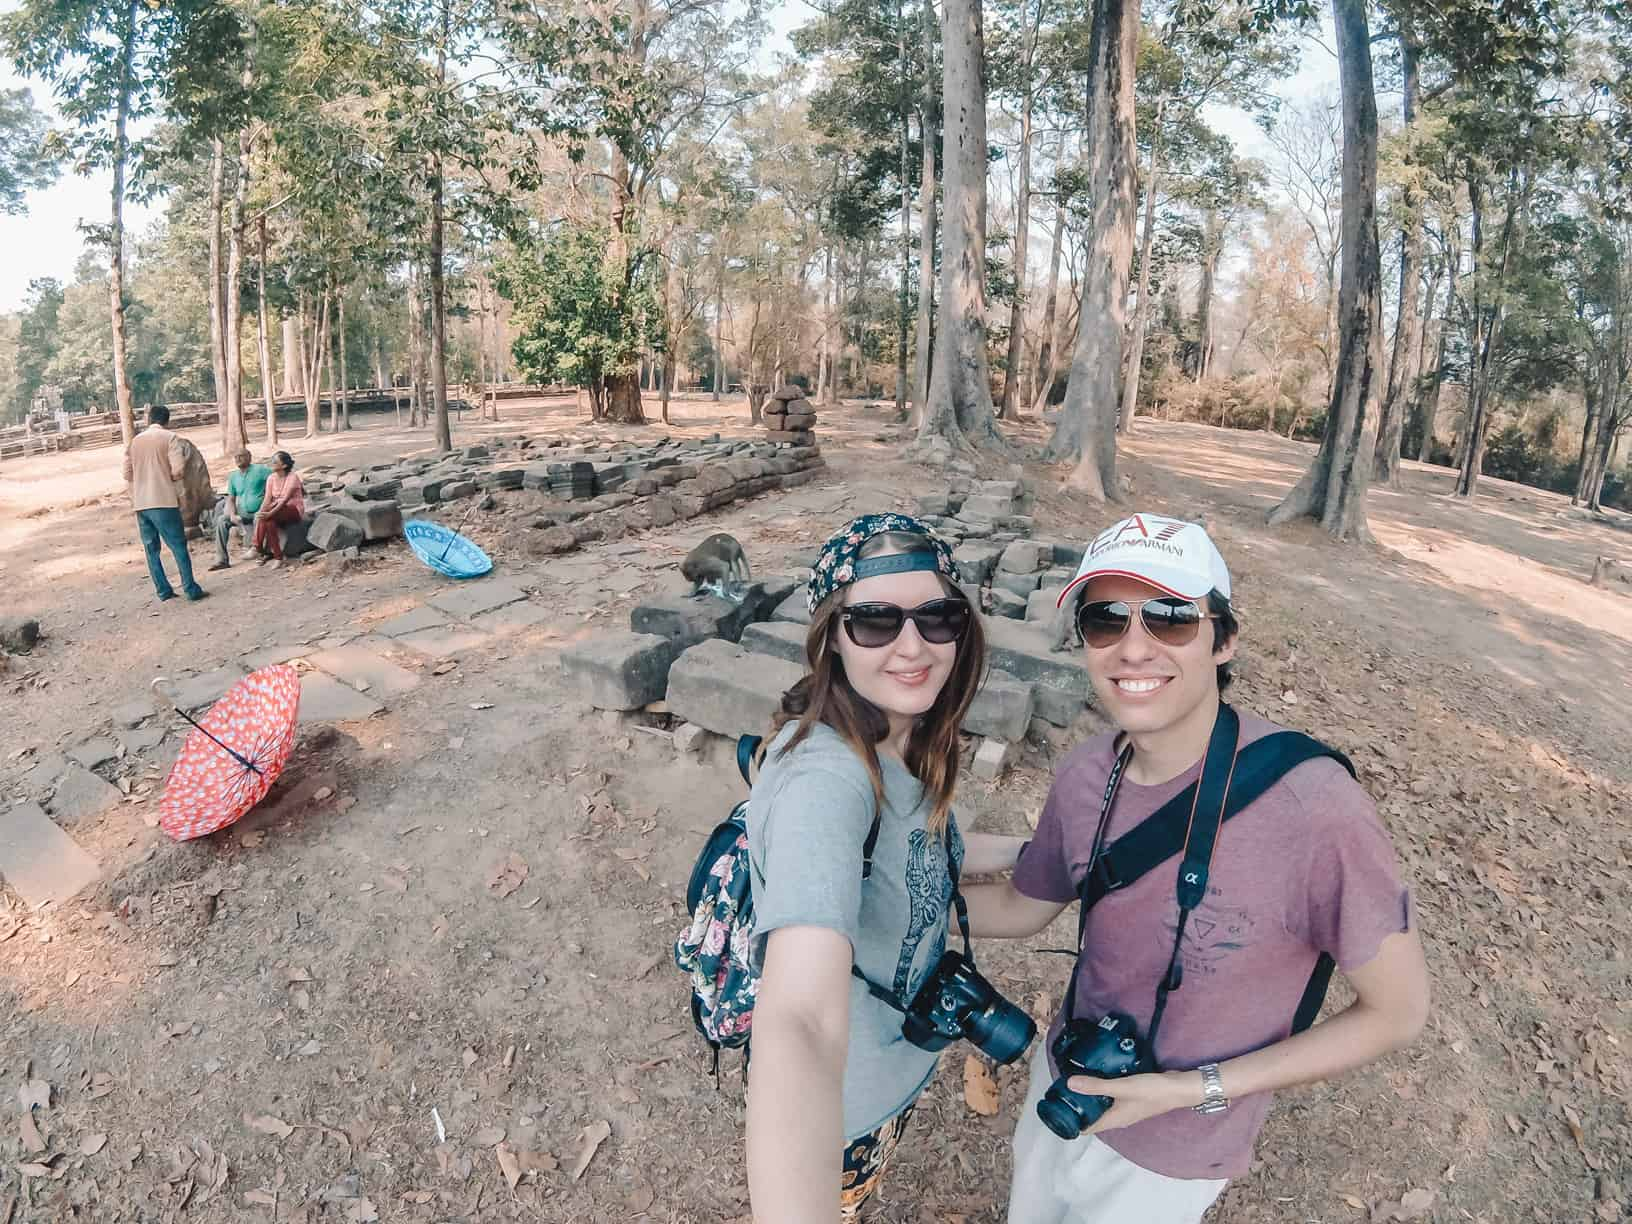 How to travel between Thailand and Cambodia? Bangkok & Siem Reap on the same trip